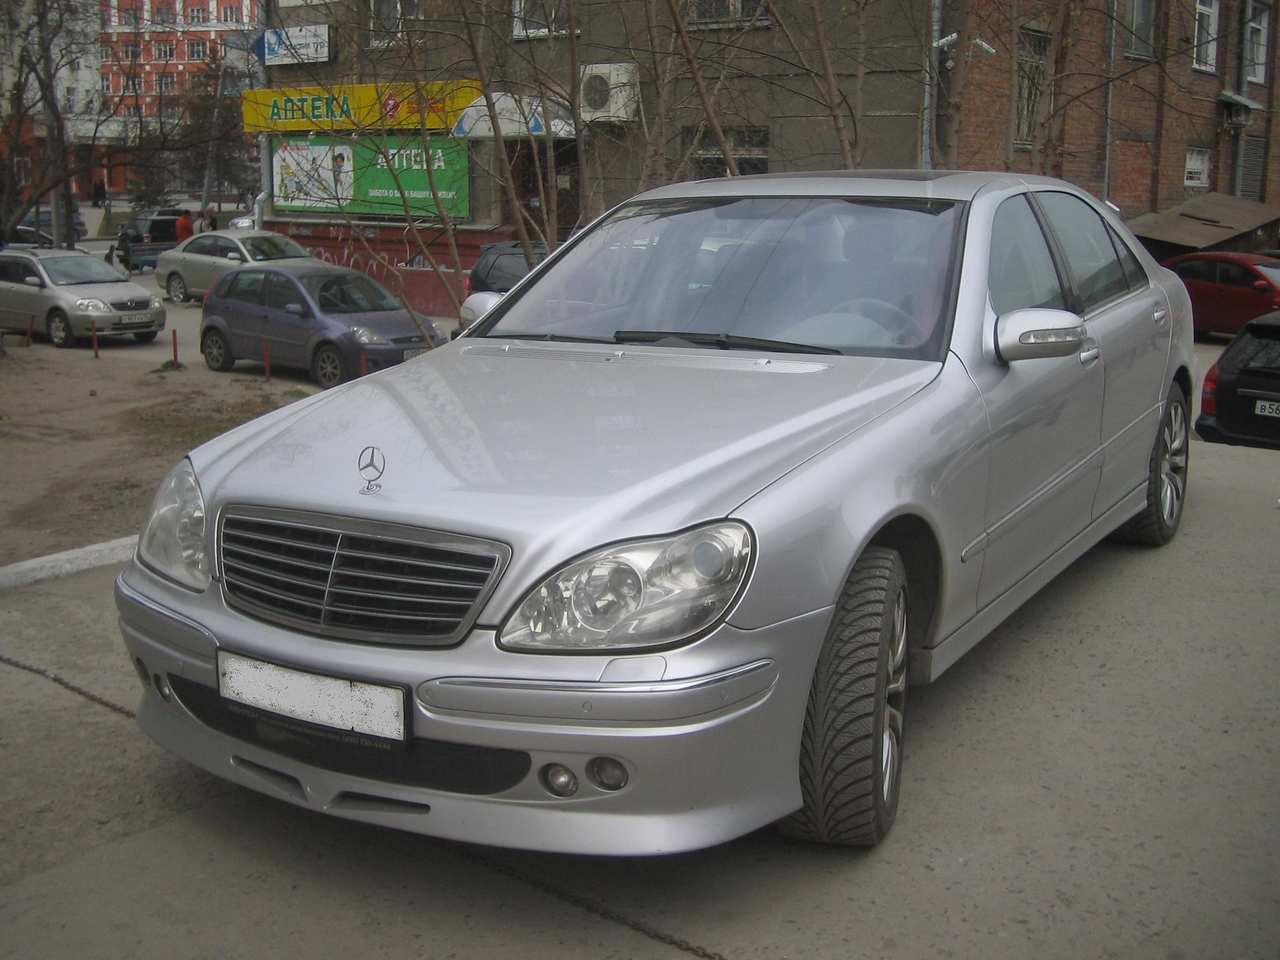 used 2004 mercedes benz s class photos 4966cc gasoline automatic for sale. Black Bedroom Furniture Sets. Home Design Ideas